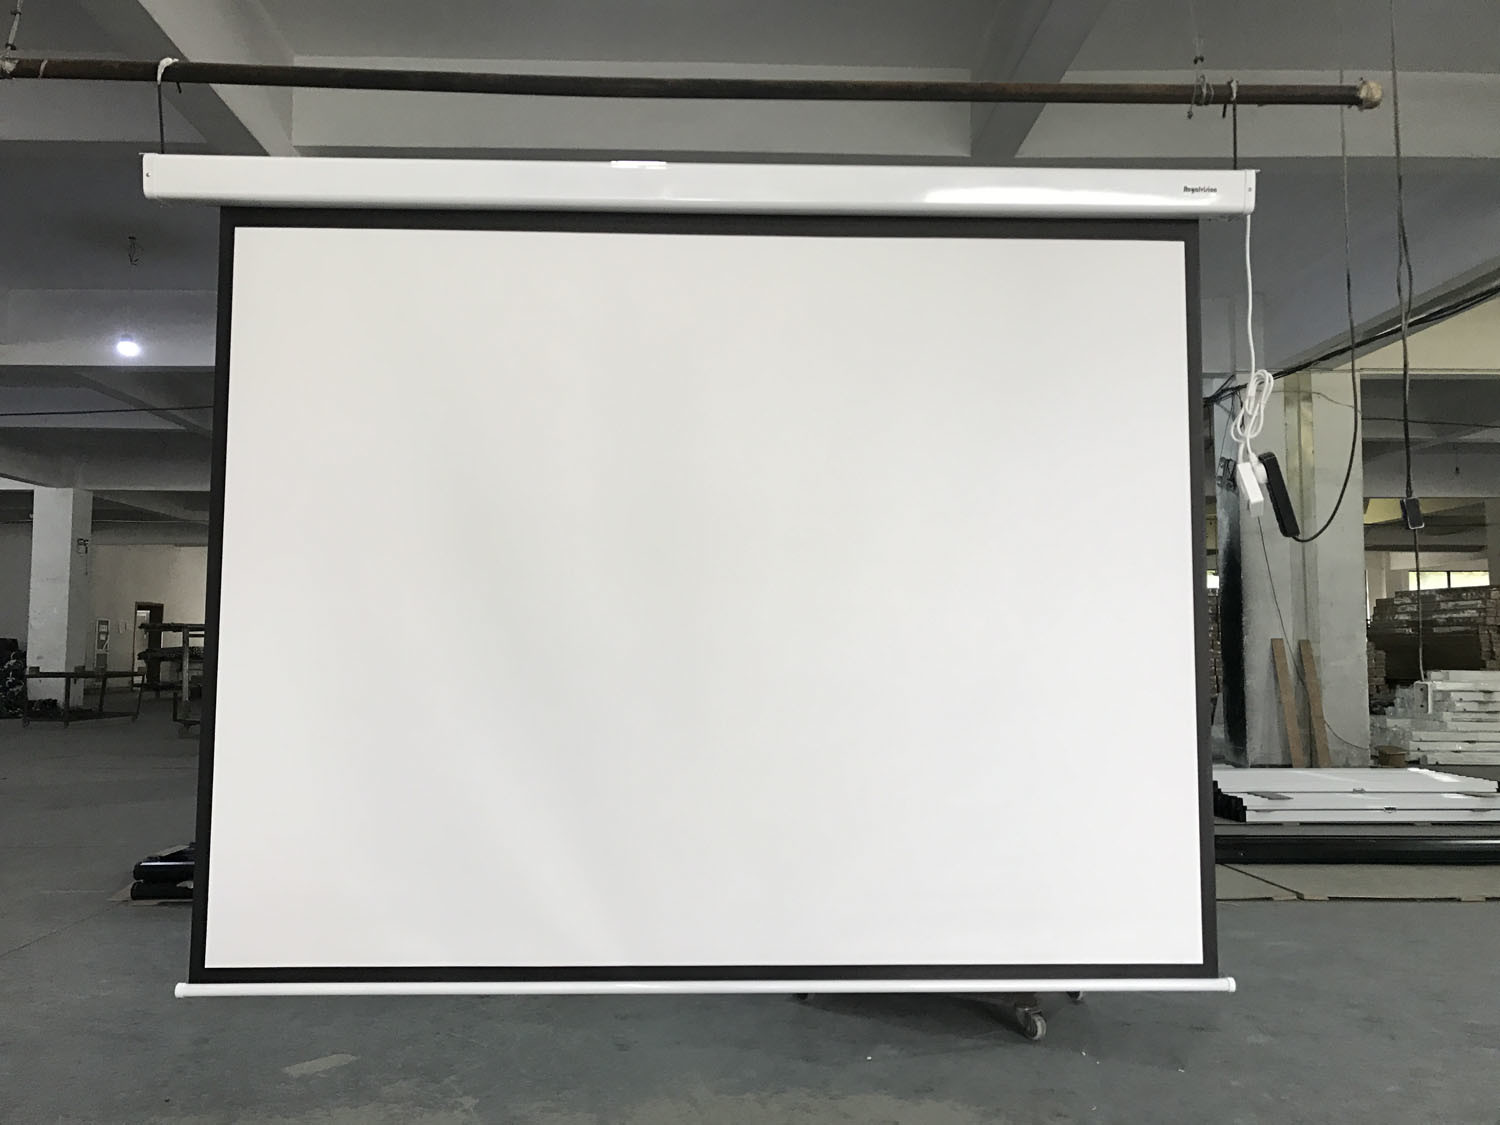 Electric Projection Screen / Motorized Projector Screen